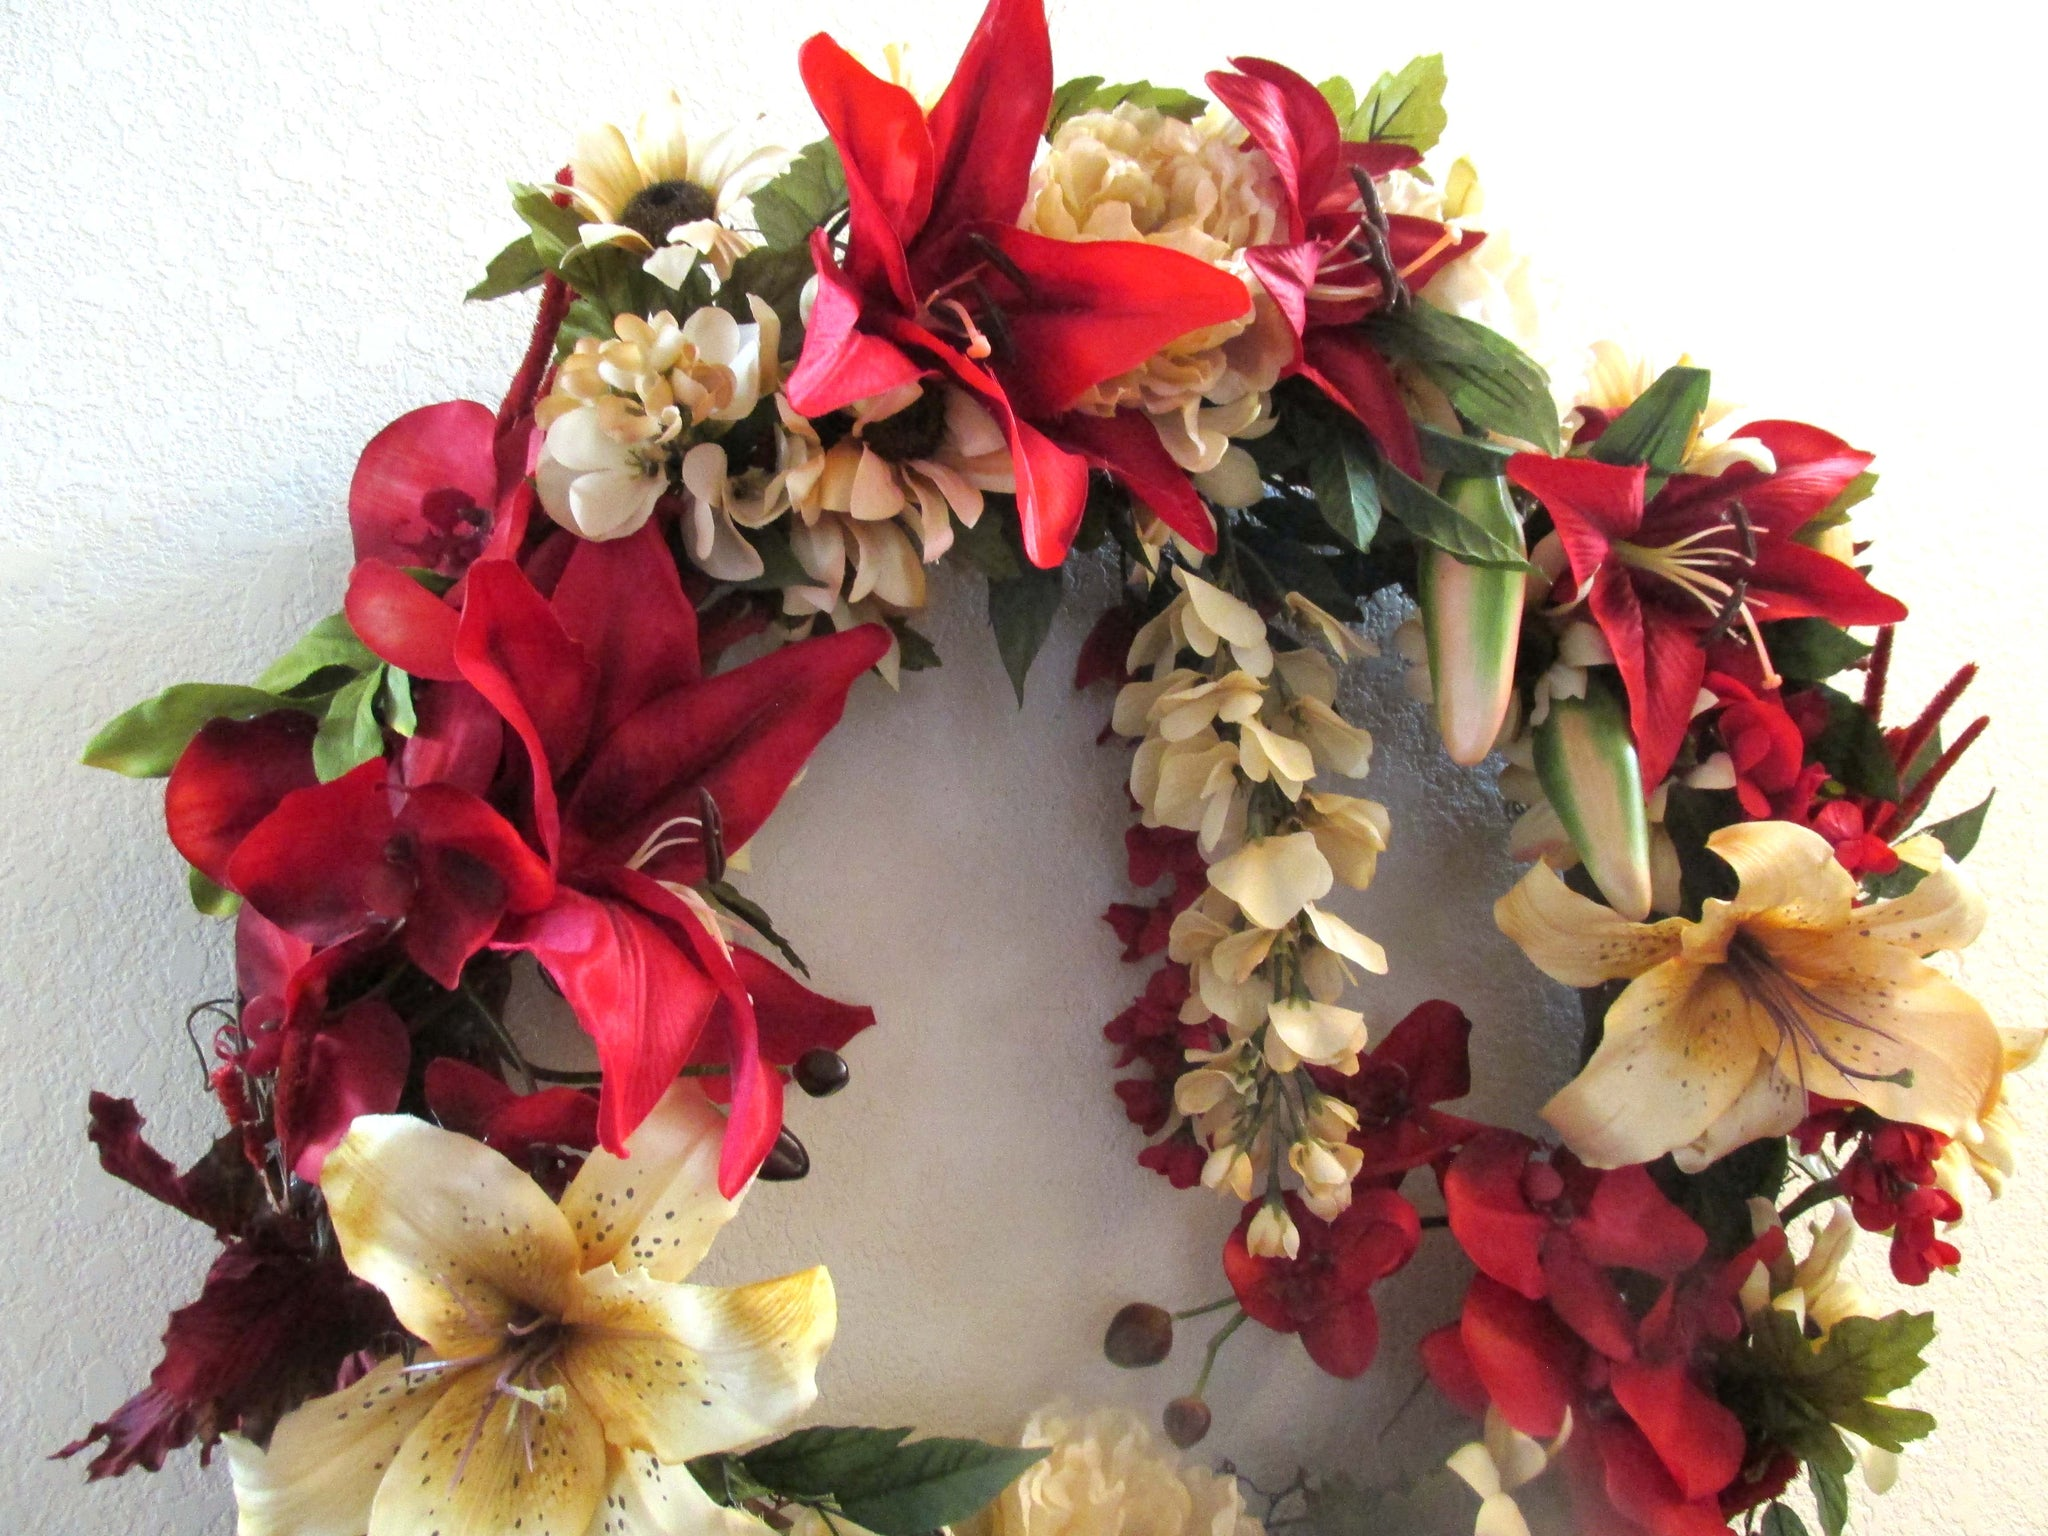 Large Victorian Wreath for Holiday or Every Day Home Decor in Dark Red and Gold Lilies with Orchids - Odyssey Creations